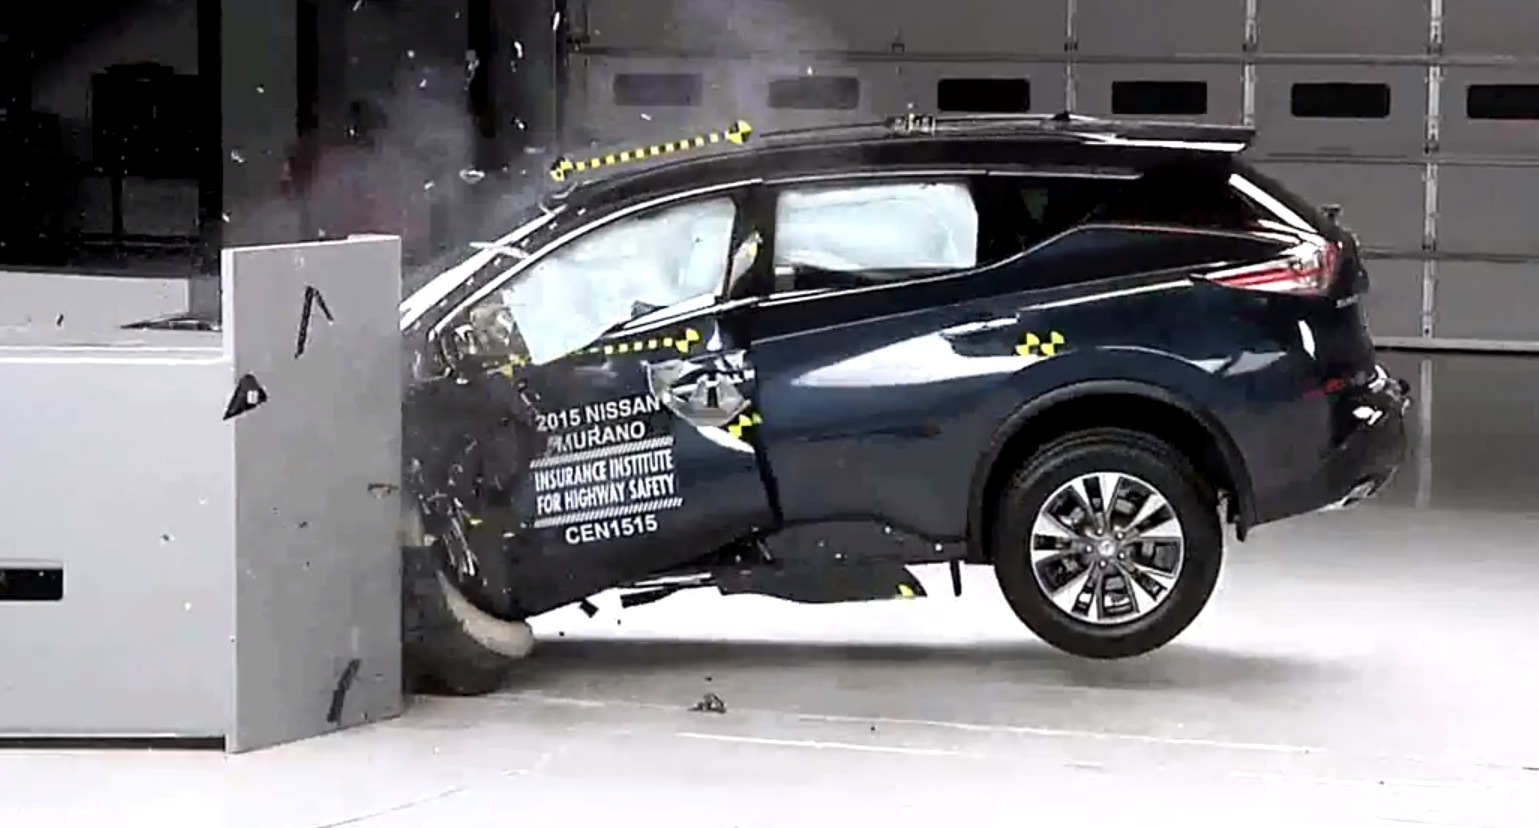 2015 Nissan Murano Earns Top Safety Pick Plus Rating from IIHS